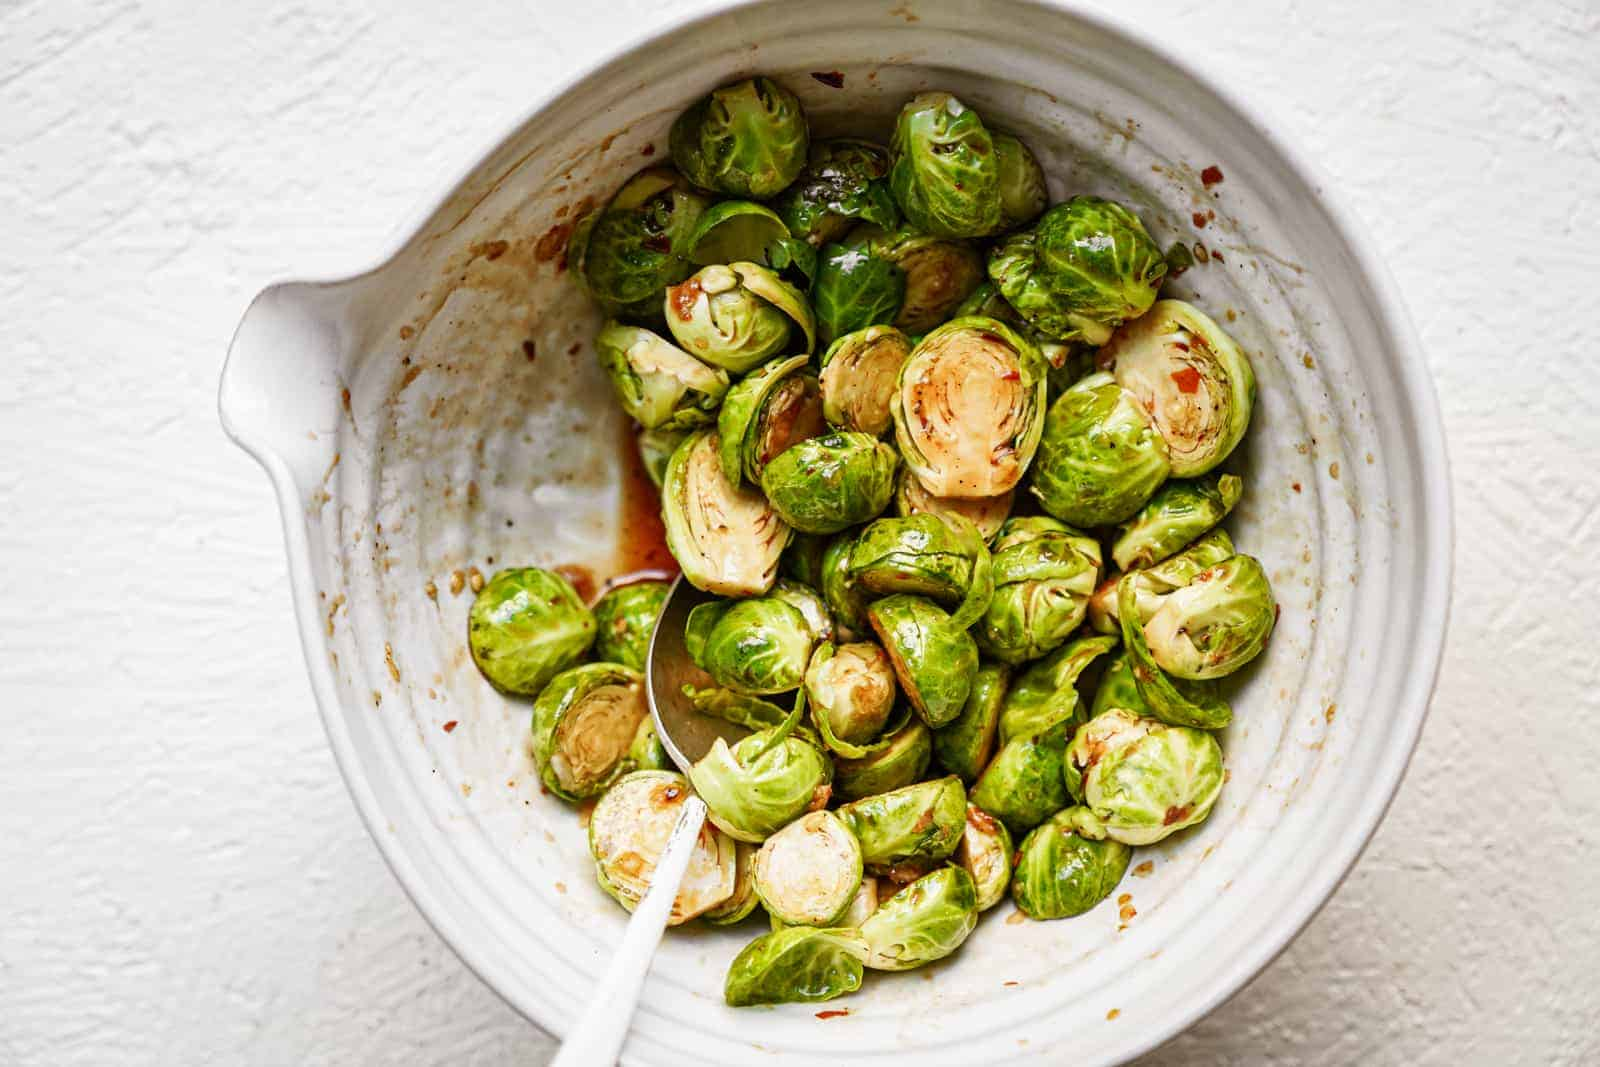 vegan brussel sprouts recipe in a bowl